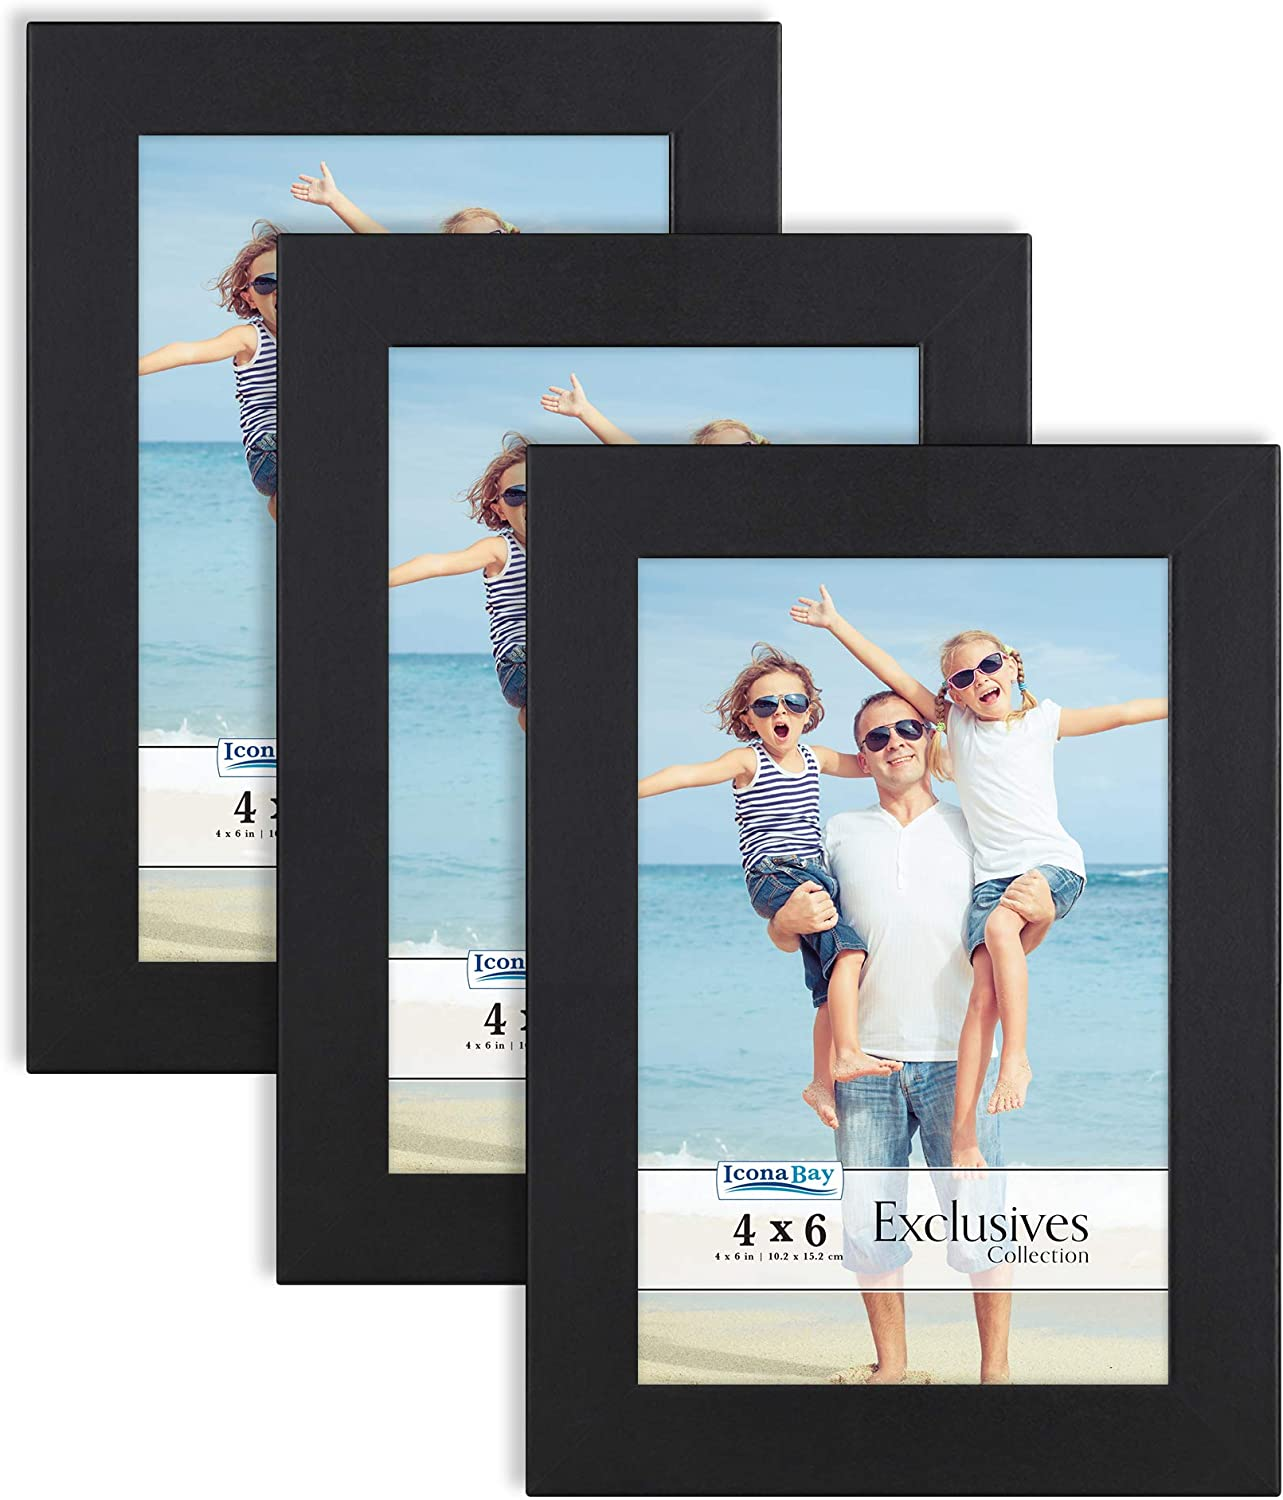 Amazon Com Icona Bay 4x6 Picture Frames Black 3 Pack Sturdy Wood Composite Photo Frames 4 X 6 Sleek Design Table Top Or Wall Mount Exclusives Collection